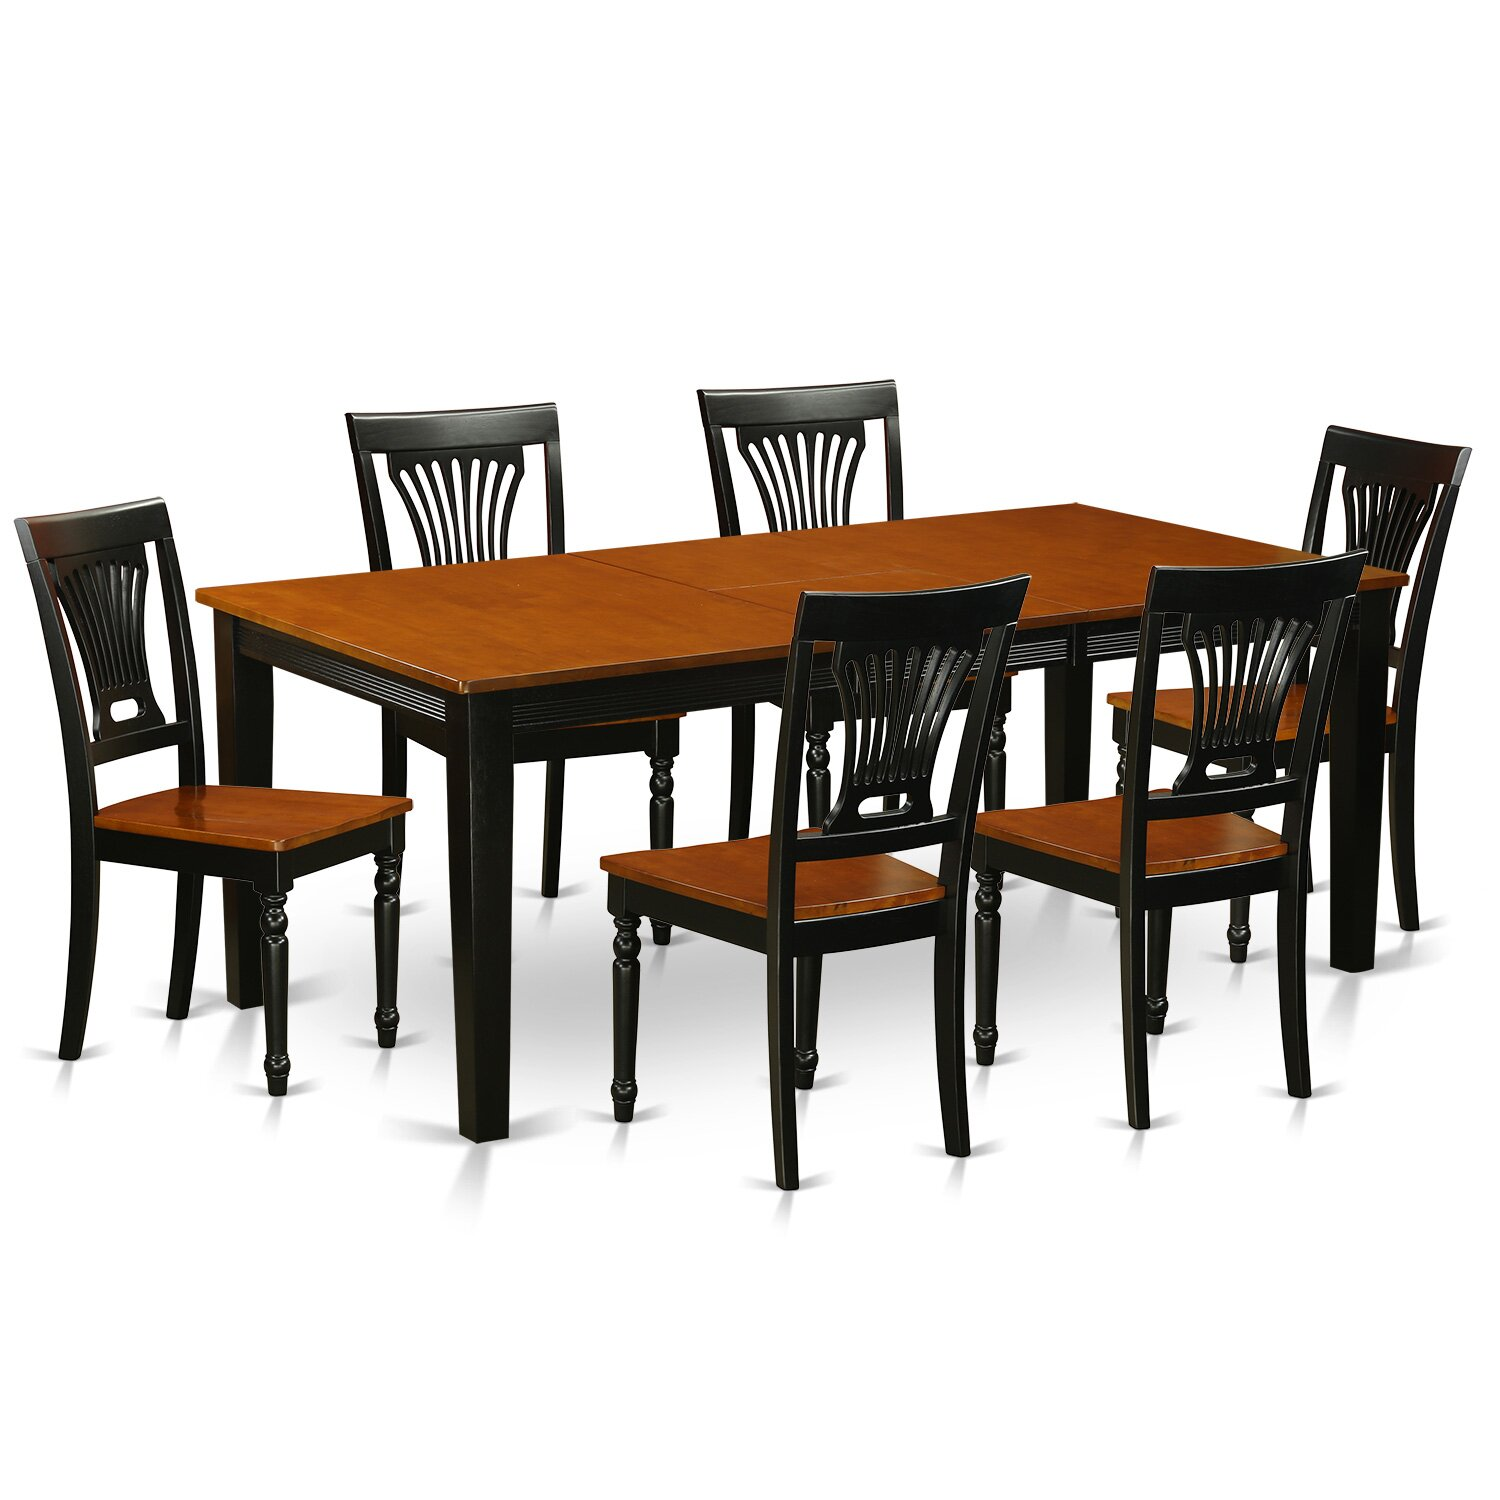 Dining Room Set Delivery By Nov